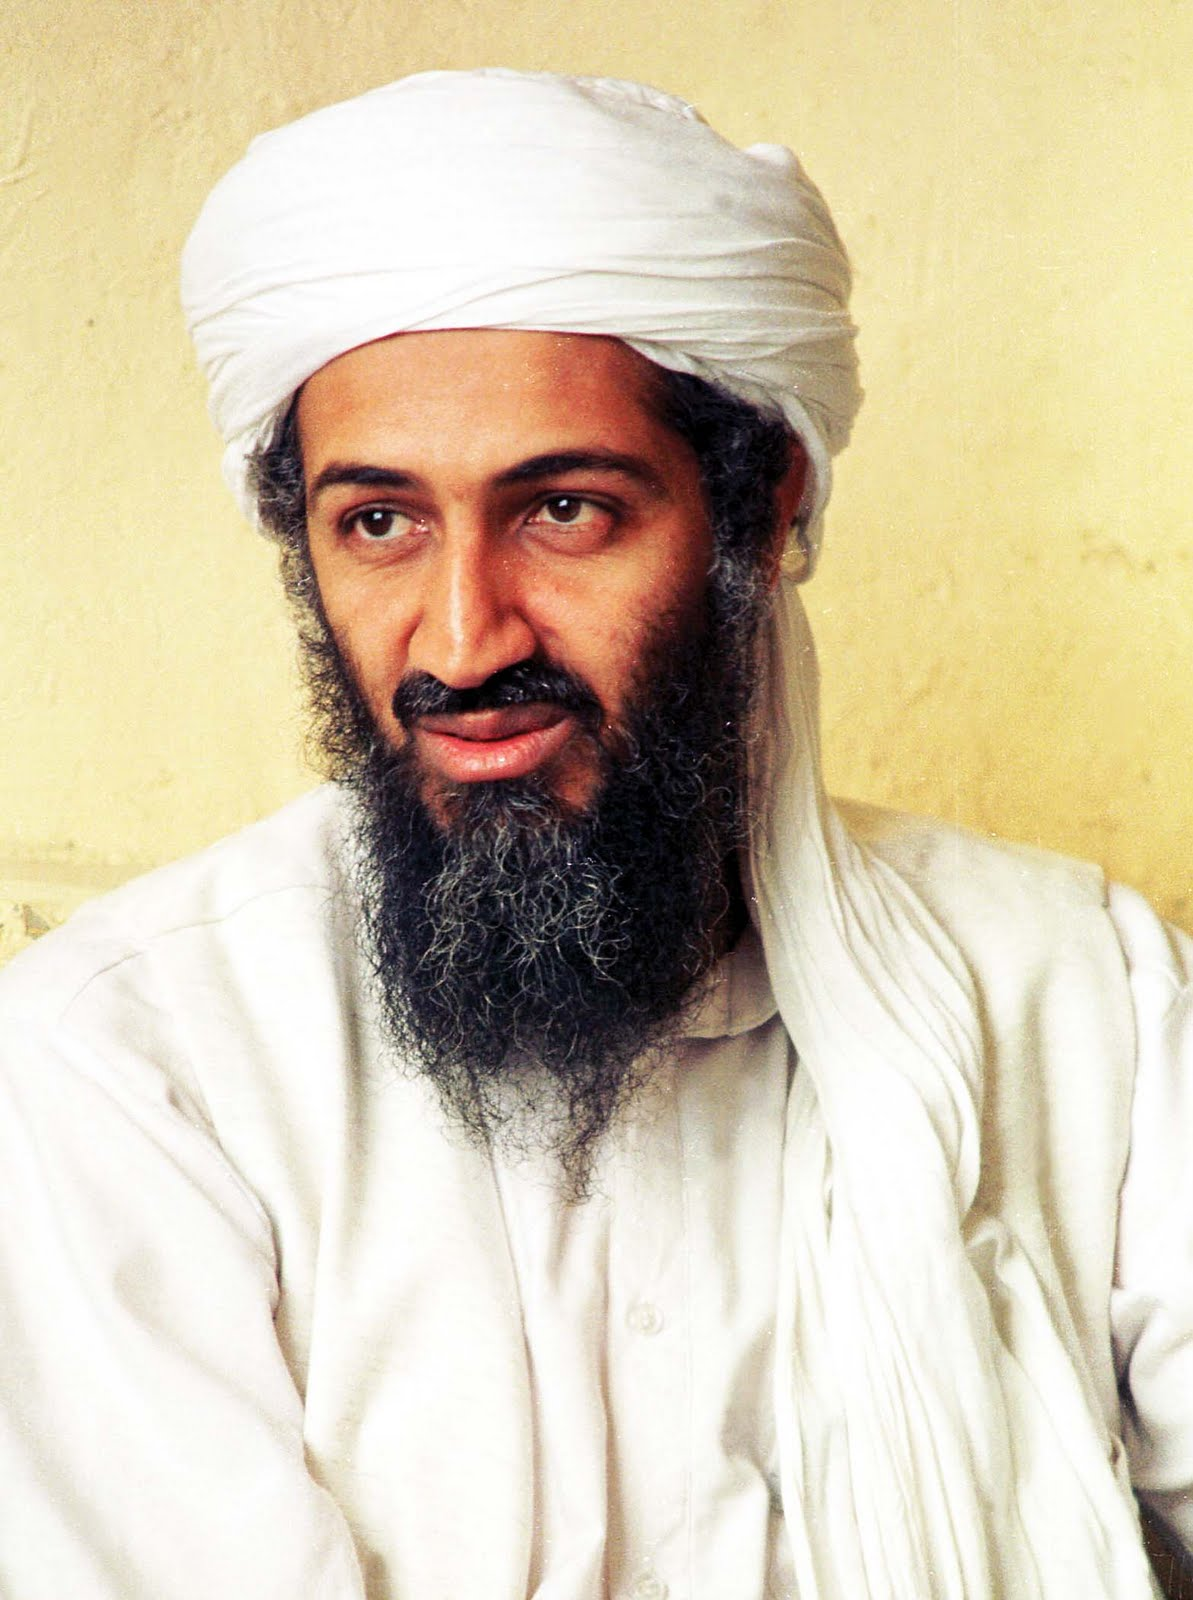 the death of osama bin laden Everything we know about the death of osama bin laden is wrong a controversial report by seymour hersh leaves still more questions than answers, but it does make one thing clear.